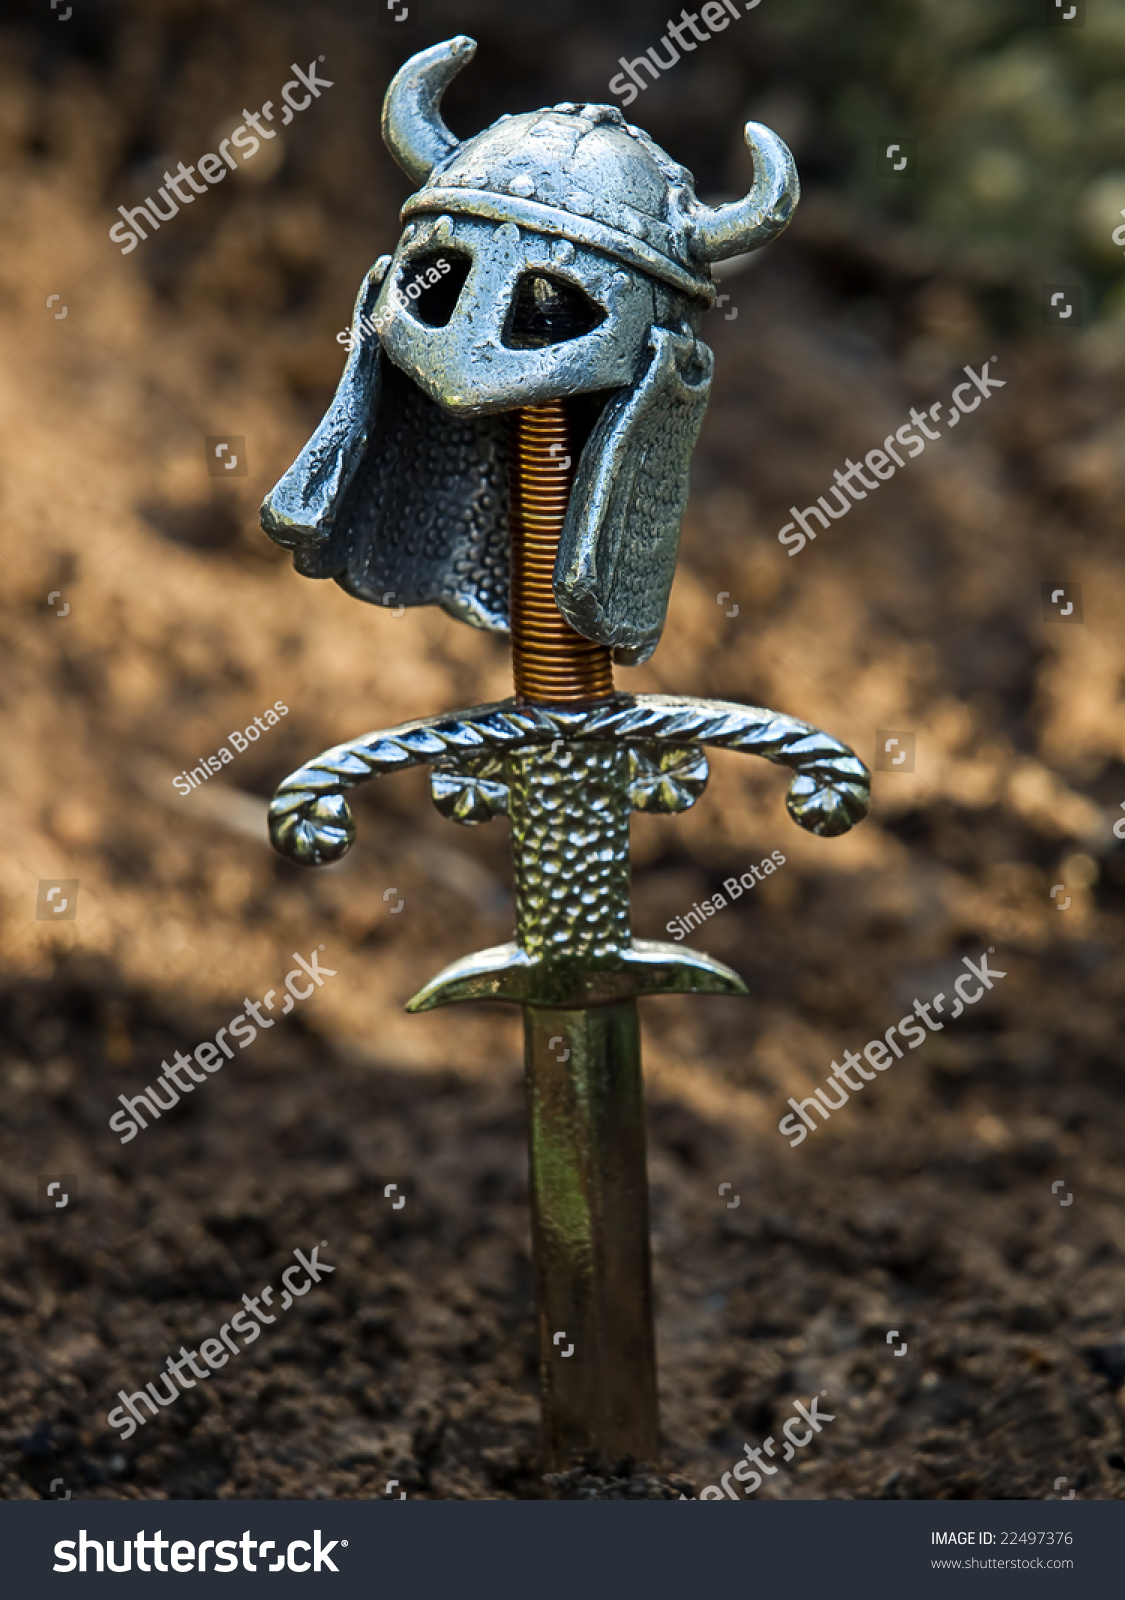 Warrior's grave with a sword and helmet instead of the cross.